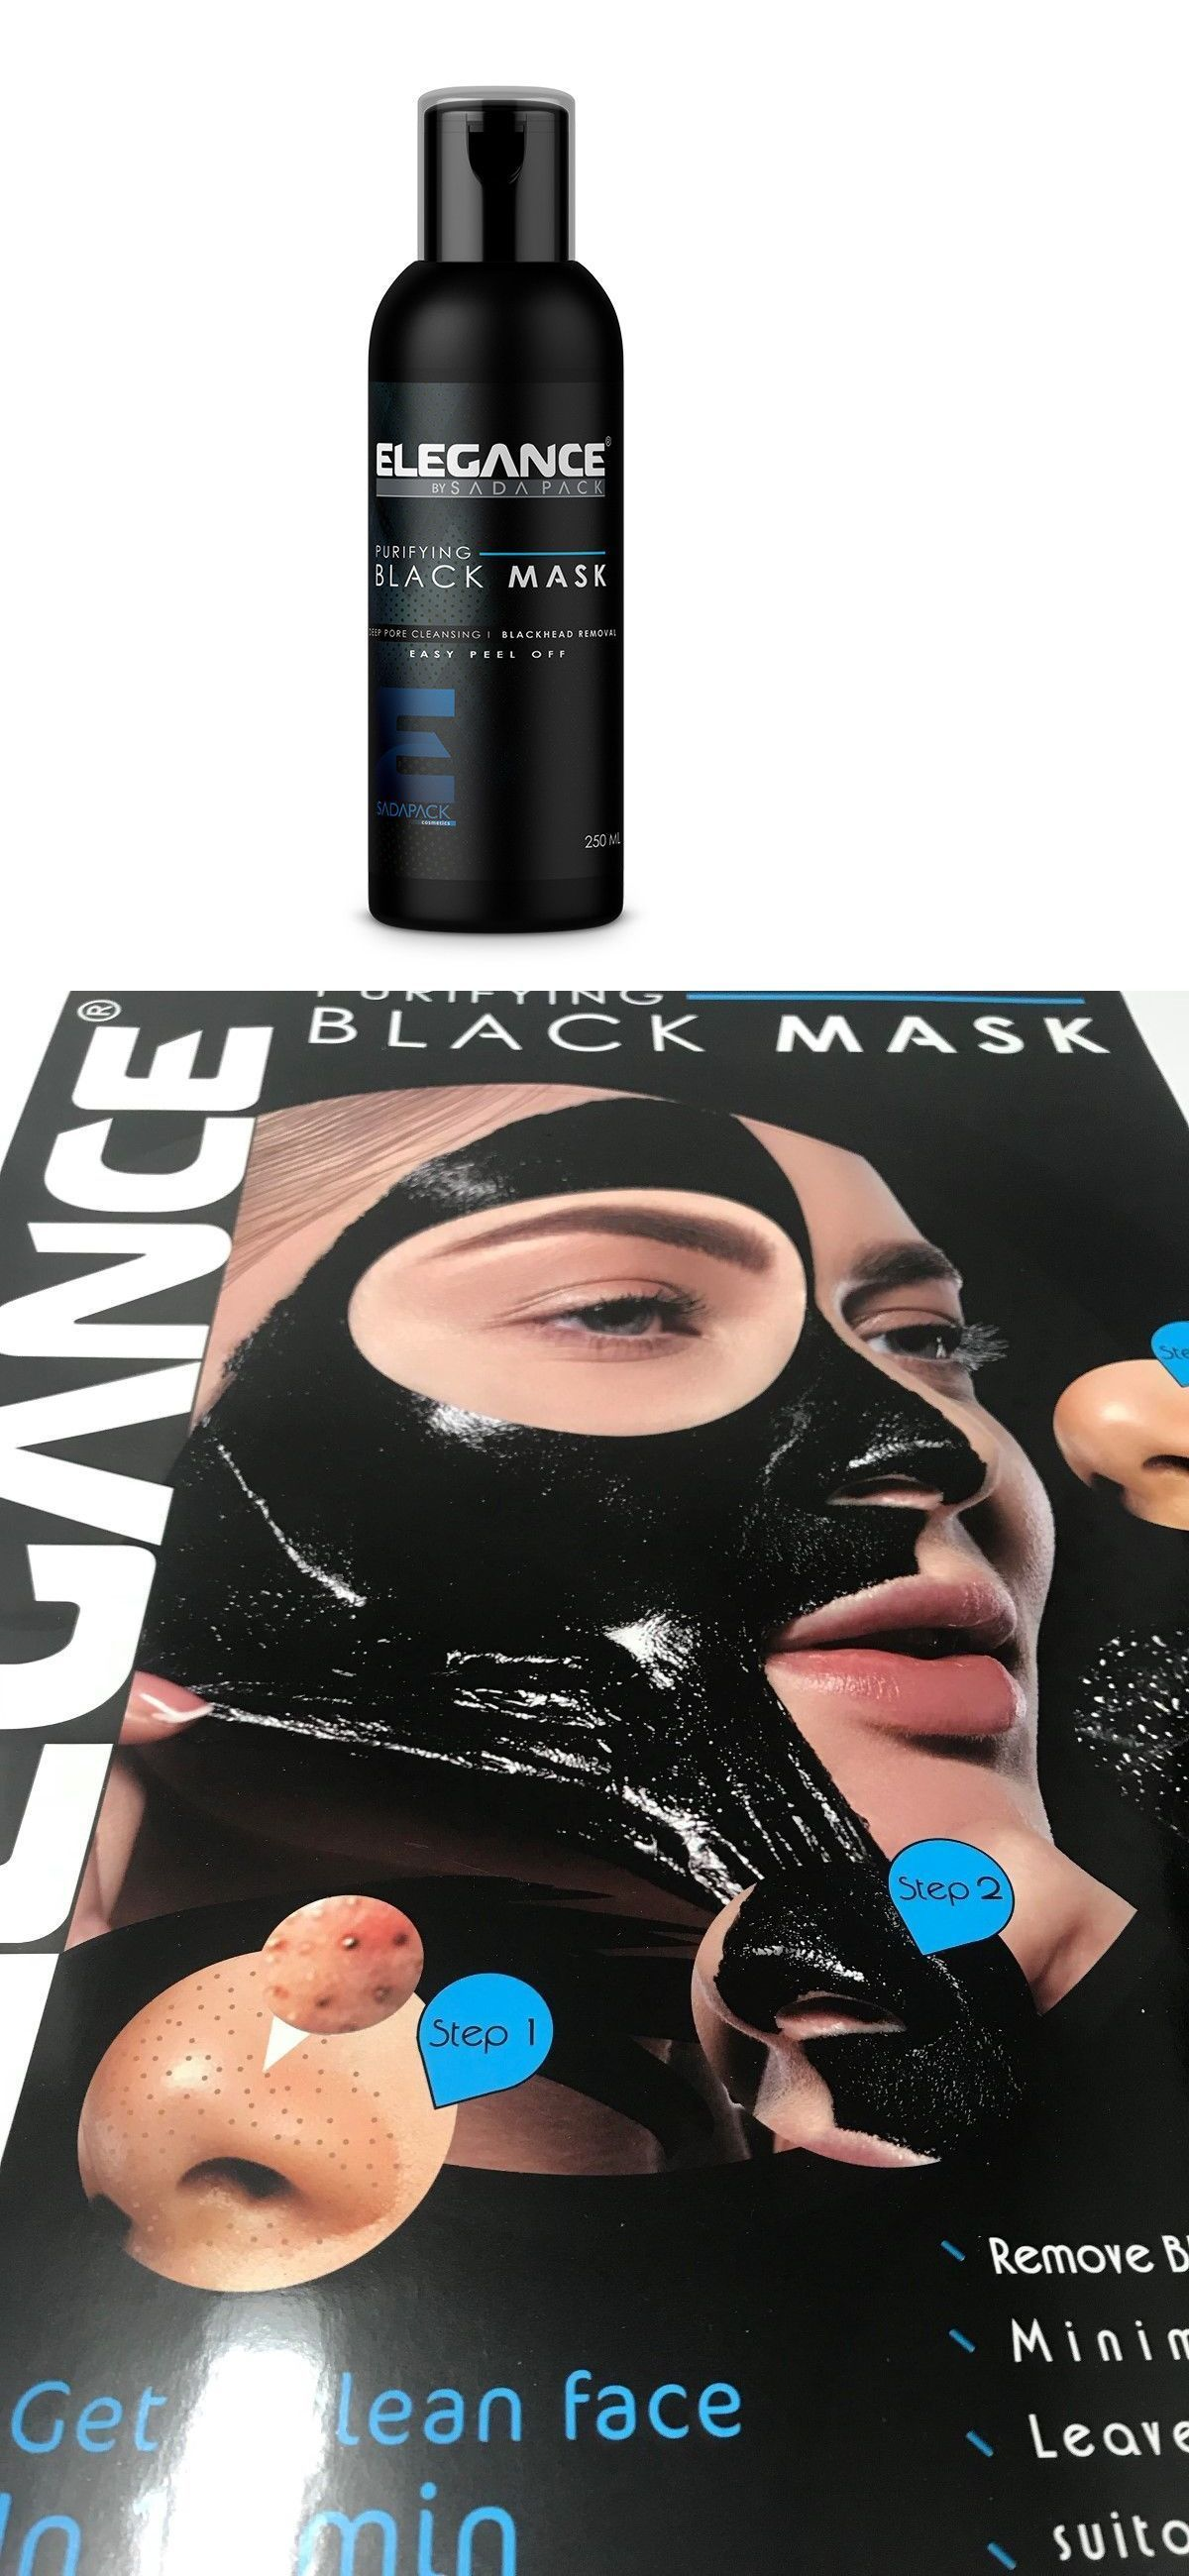 Photo of Masks and Peels 21022: Elegance Purifying Deep Pore Black Head Cleansing Easy Pe…